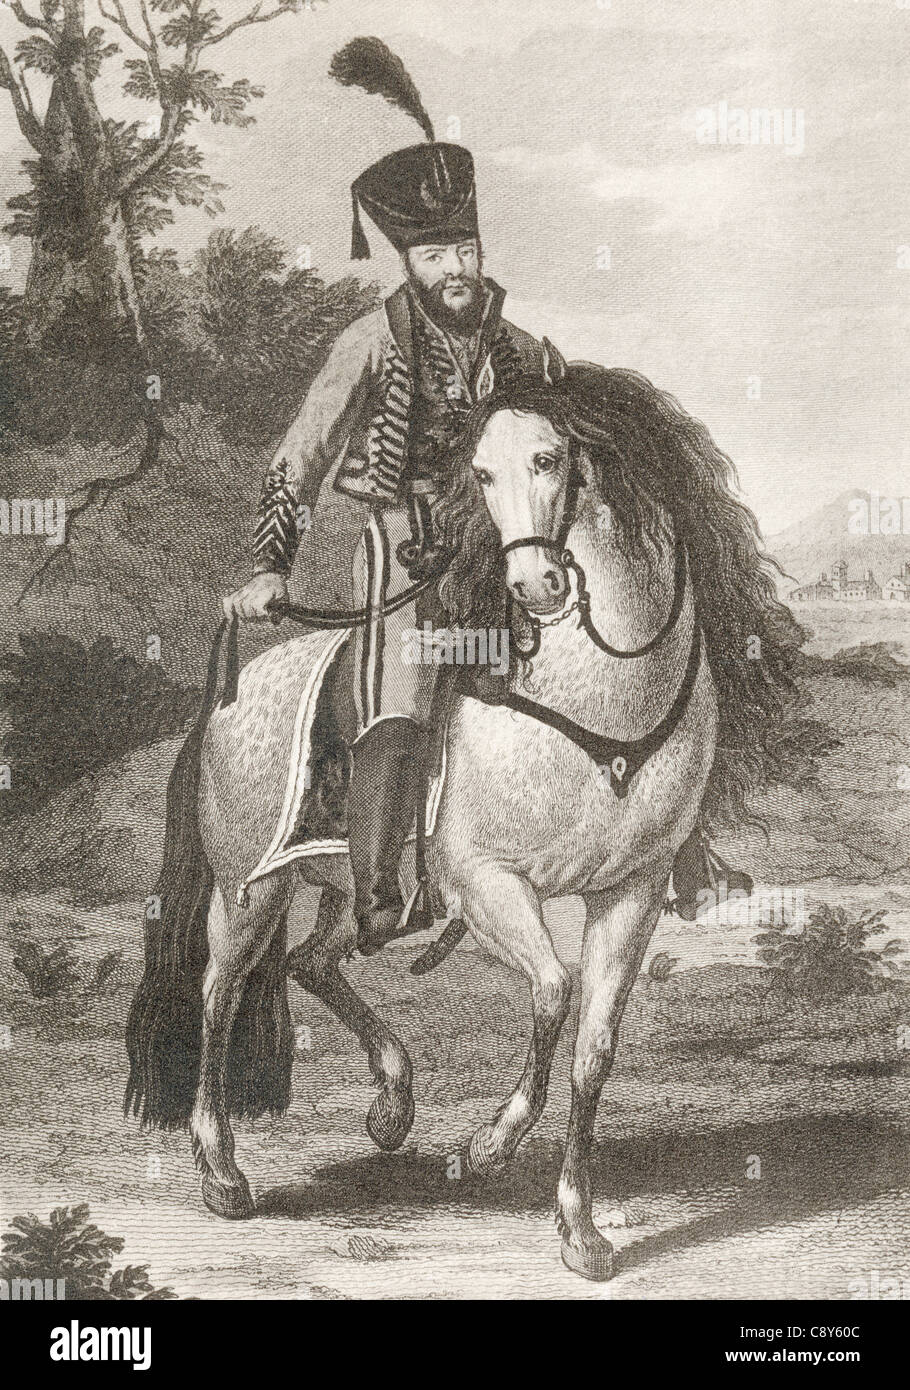 Francisco Abad Moreno, also called El Chaleco,1788 – 1827. Famous guerilla fighter during the Spanish War of Independence. - Stock Image